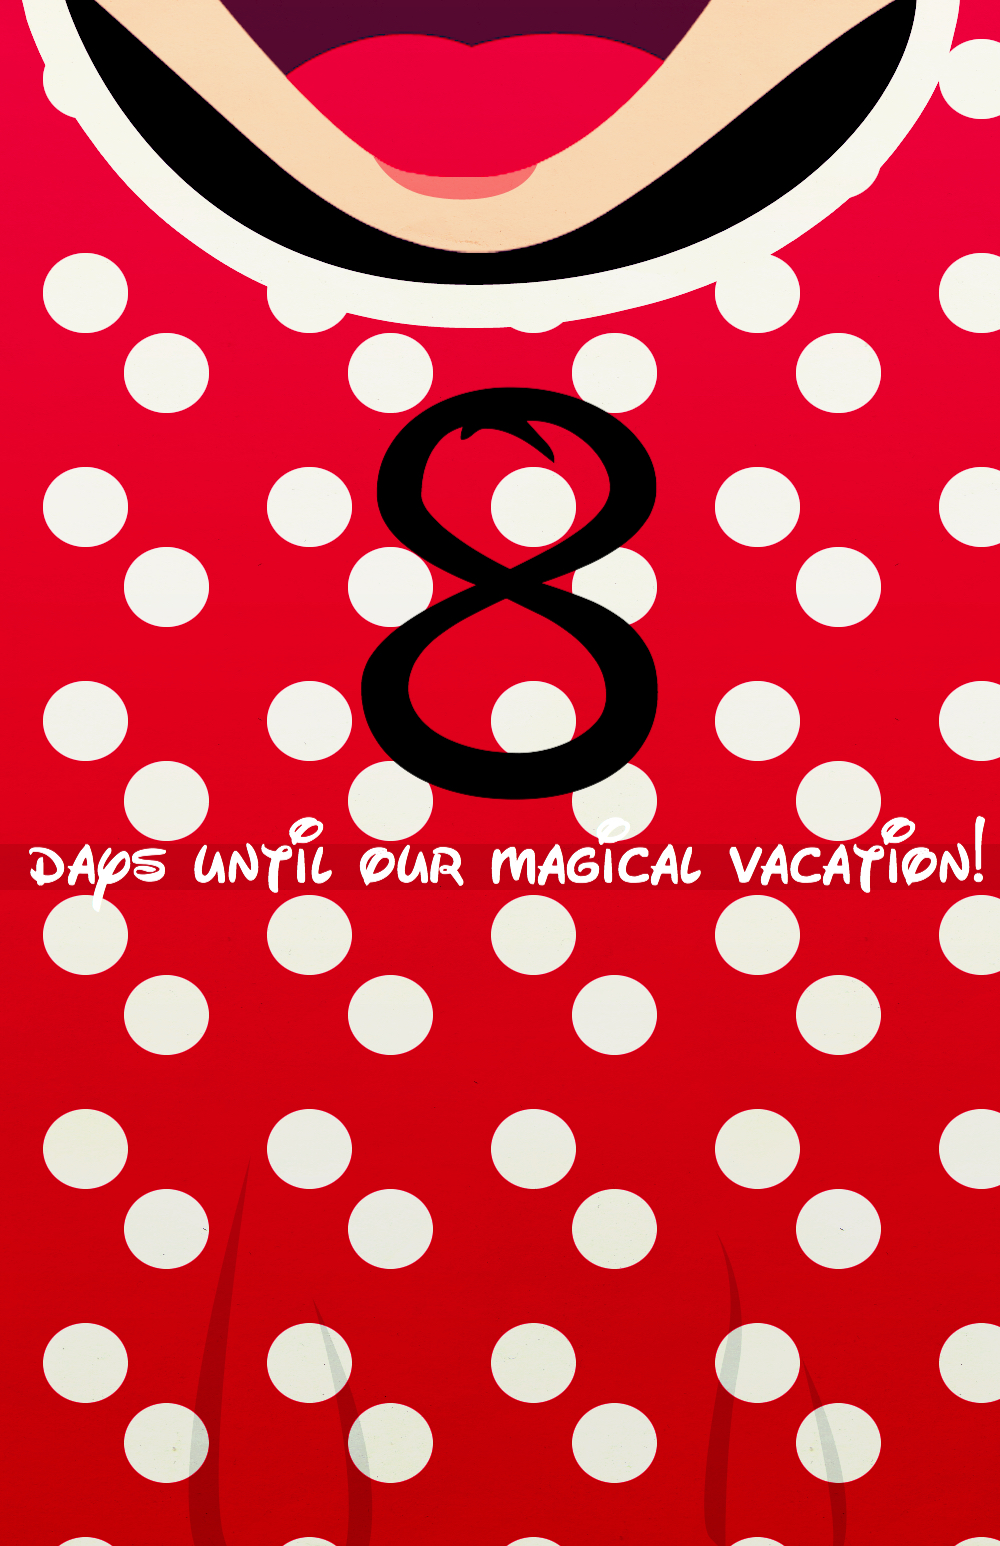 8 Days Until Our Magical Vacation